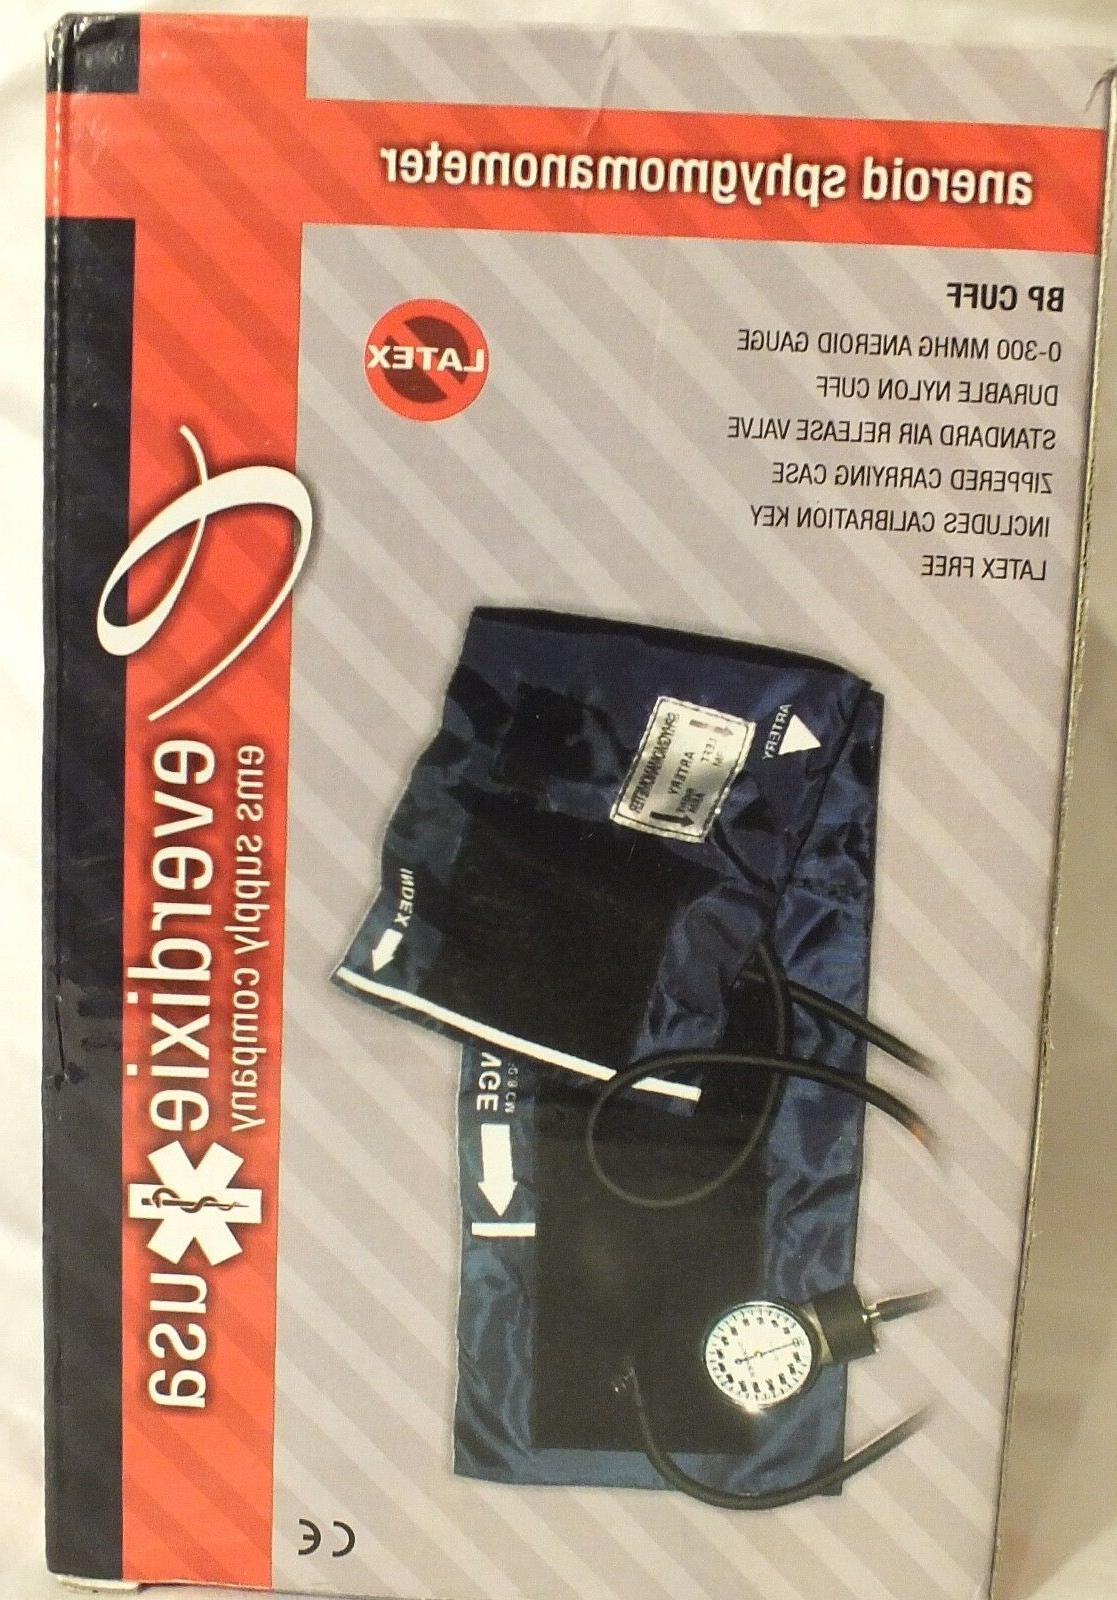 dixie ems deluxe aneroid sphygmomanometer blood pressure